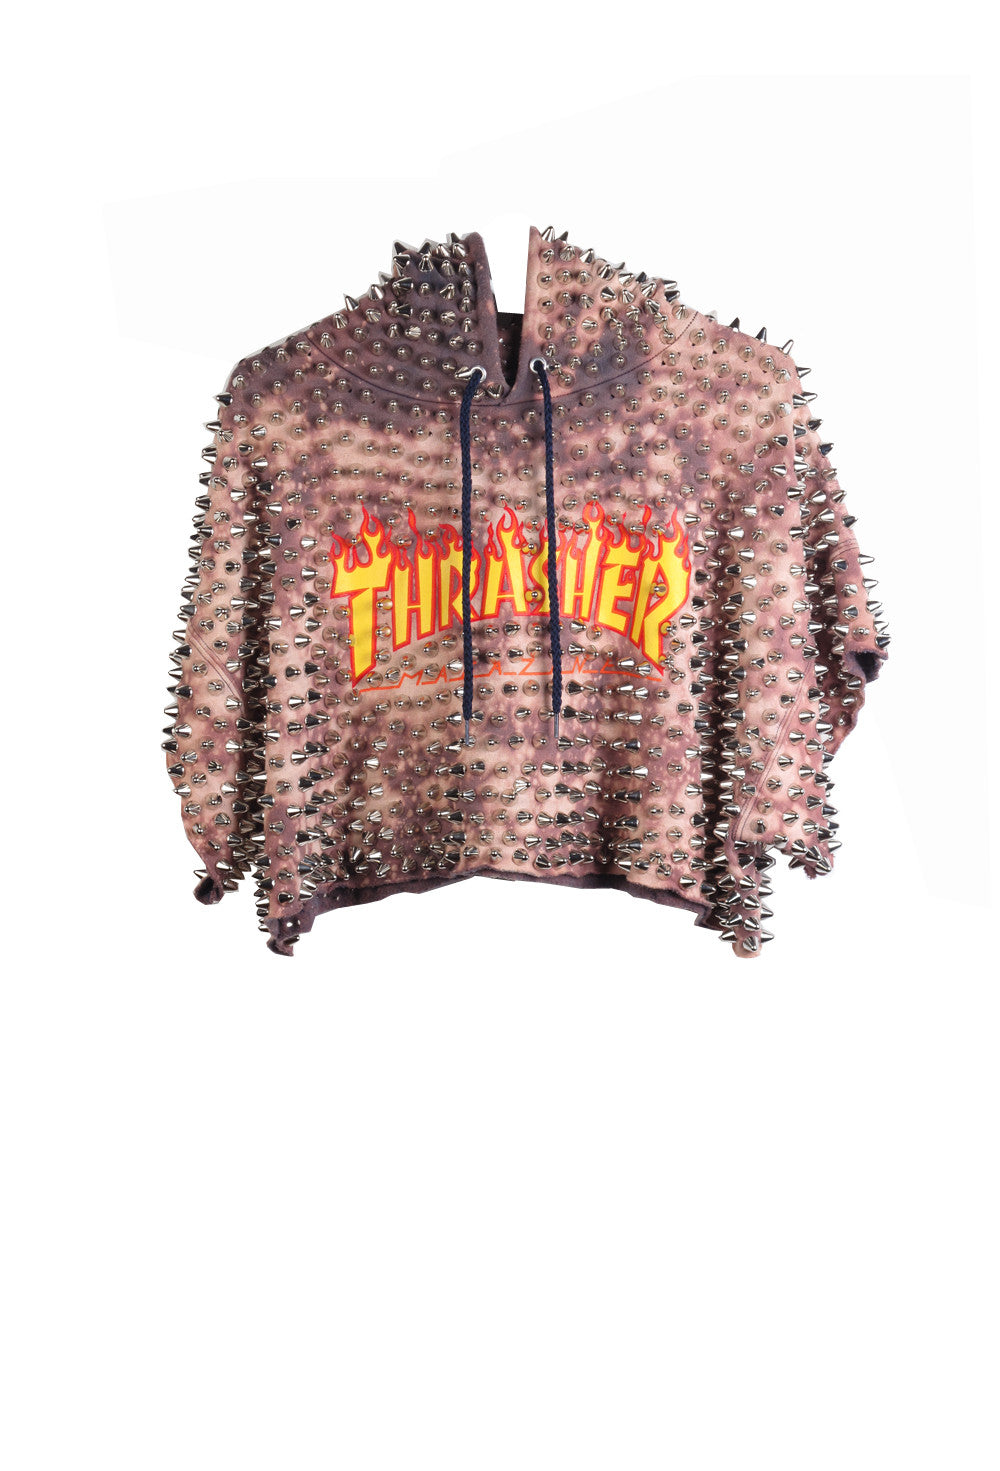 'THRASHER' Fully Loaded Crop Hoodi- AVAILABLE FOR IMMEDIATE DELIVERY SIZE M